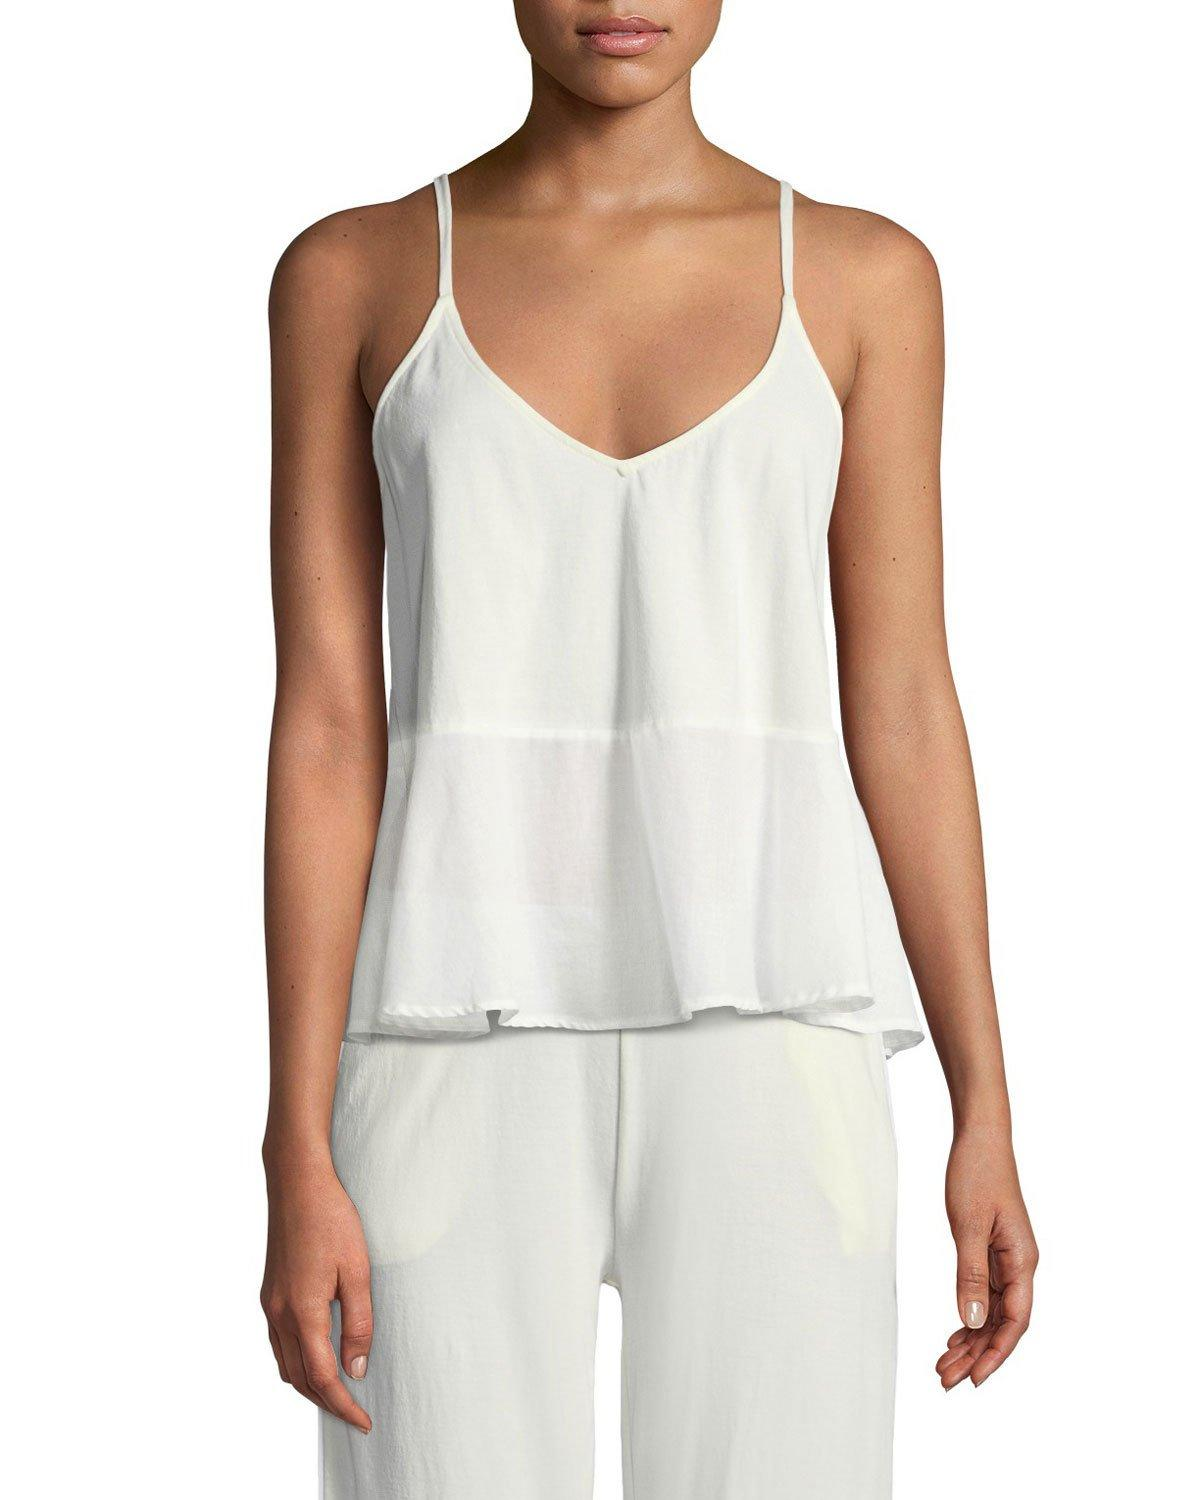 Skin Woman Voile-paneled Pima Cotton Peplum Camisole Off-white